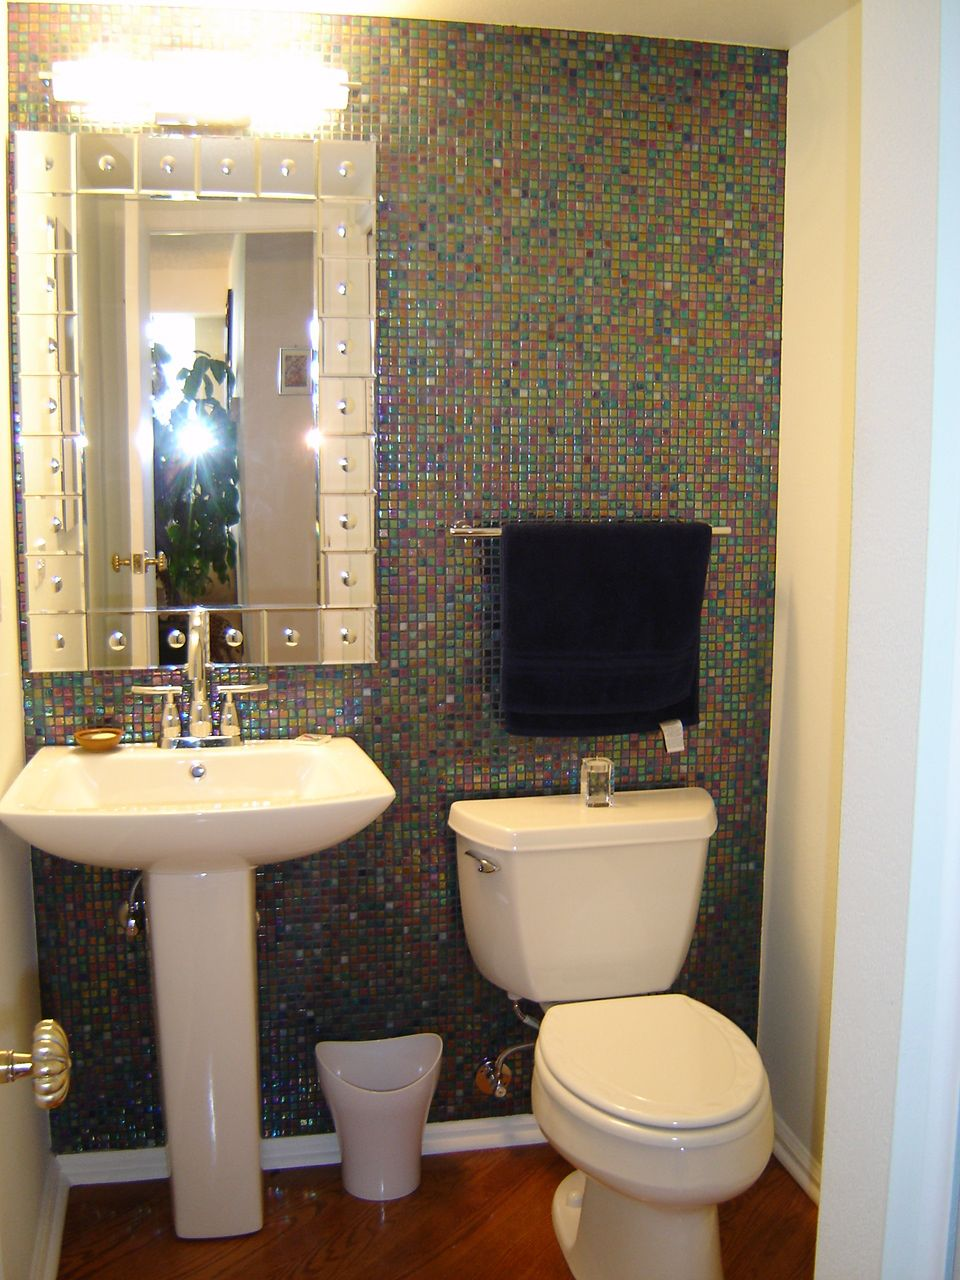 Powder Room Design Ideas Sparkling Powder Room Design With Cool Mosaic Wall Tiles White Stand Sink And Chrome Towel Rail